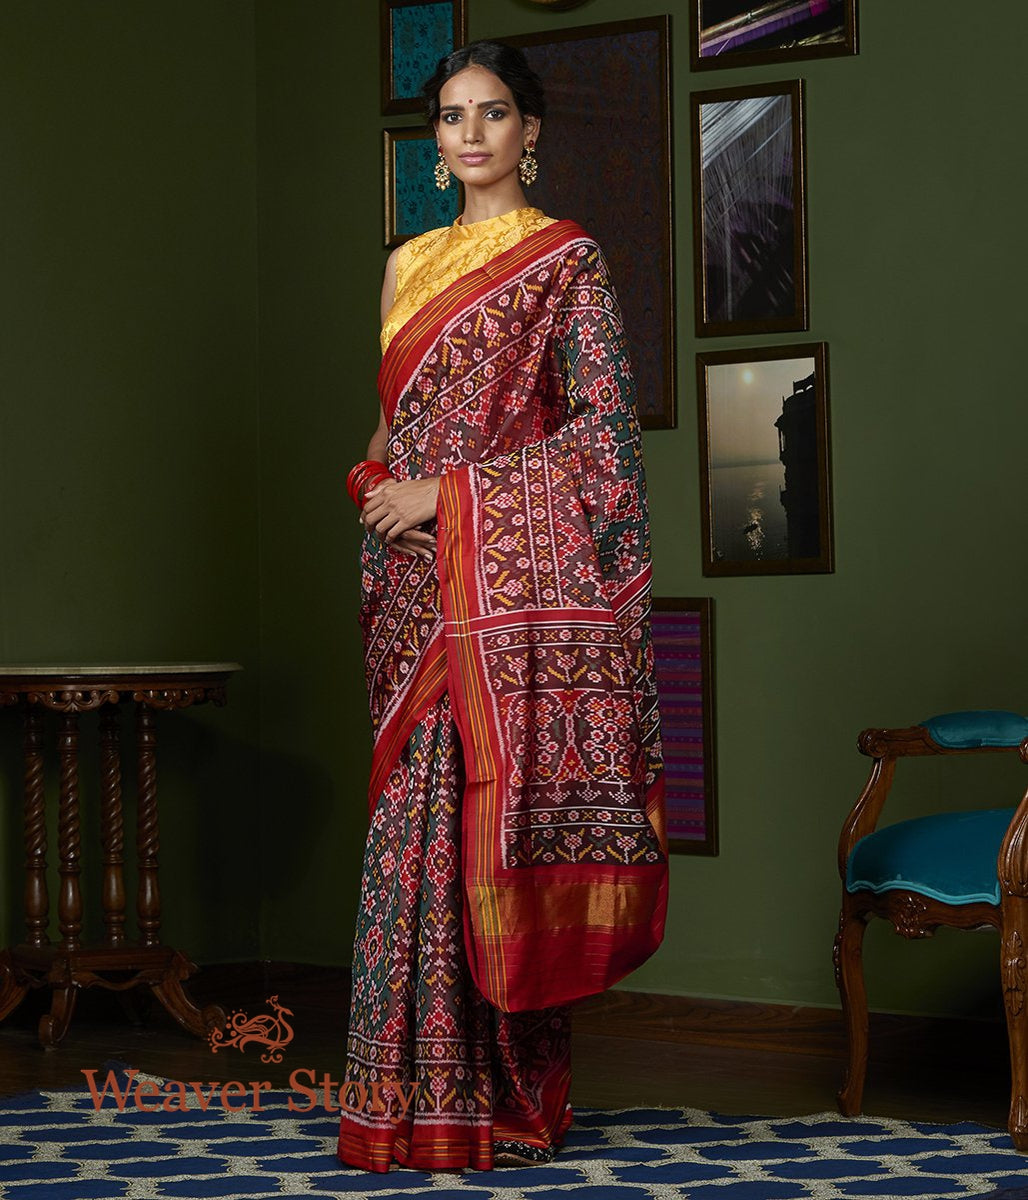 Handwoven Green and Red Dual Tone Gujarat Patola Saree with Red Border